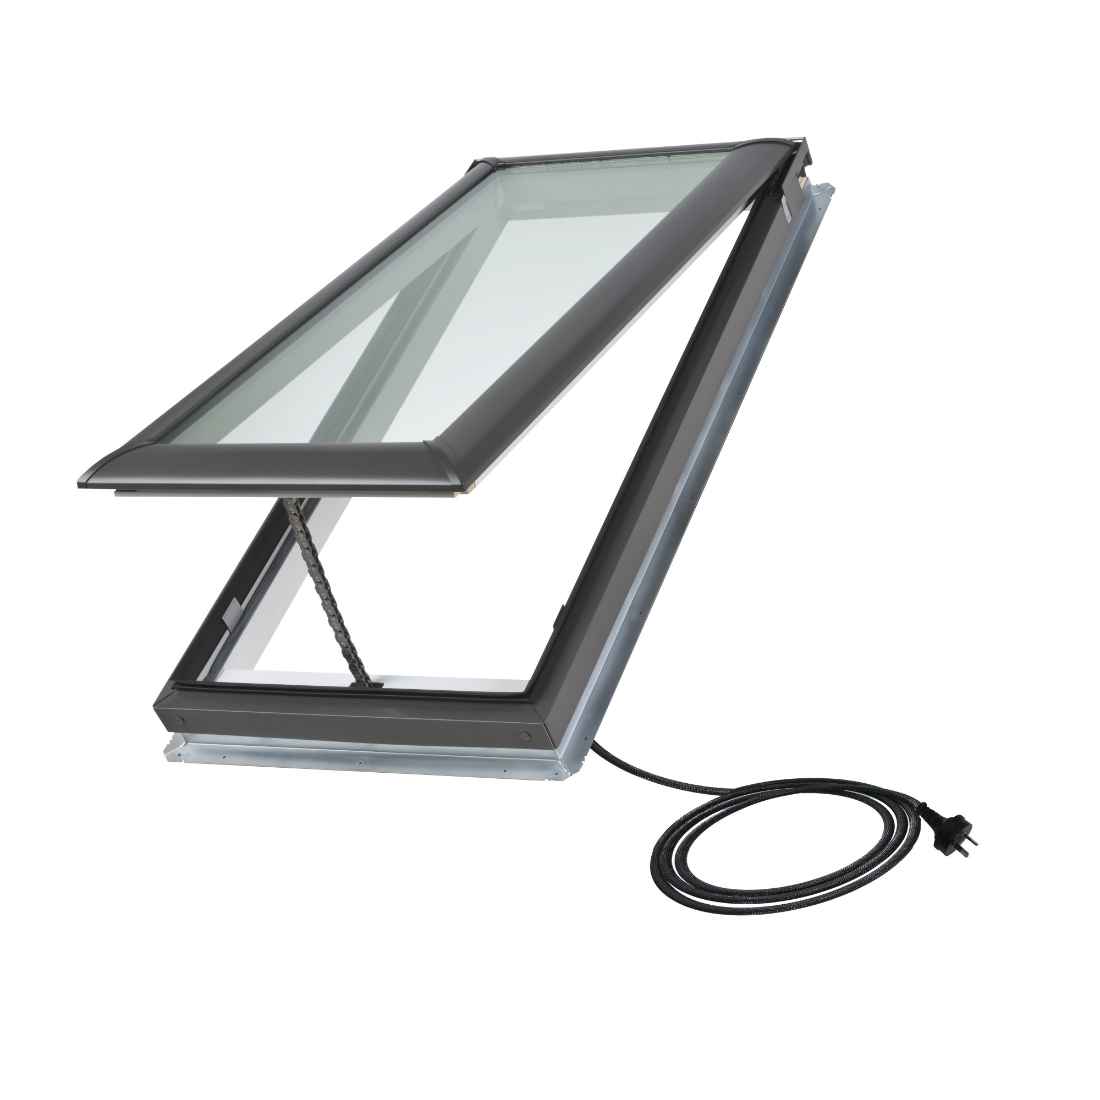 Electric Opening Skylight 1140 x 700mm